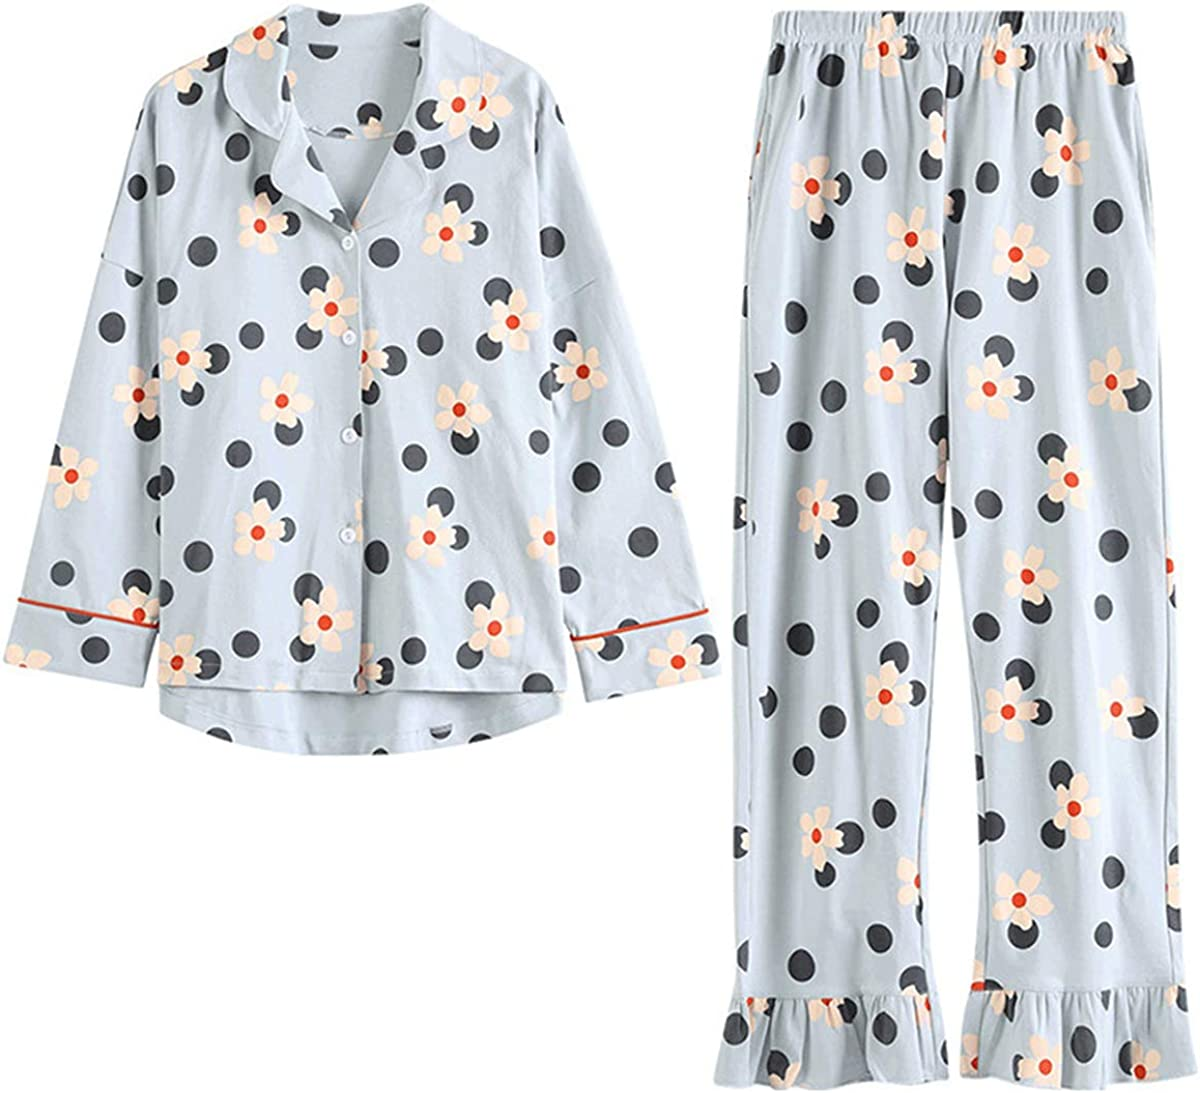 TOP-MAX Young Ladies Pajamas Set for Big Girls- Button Down Pjs for Teens Young Girls Cartoon Tops and Long Pants Loungwear